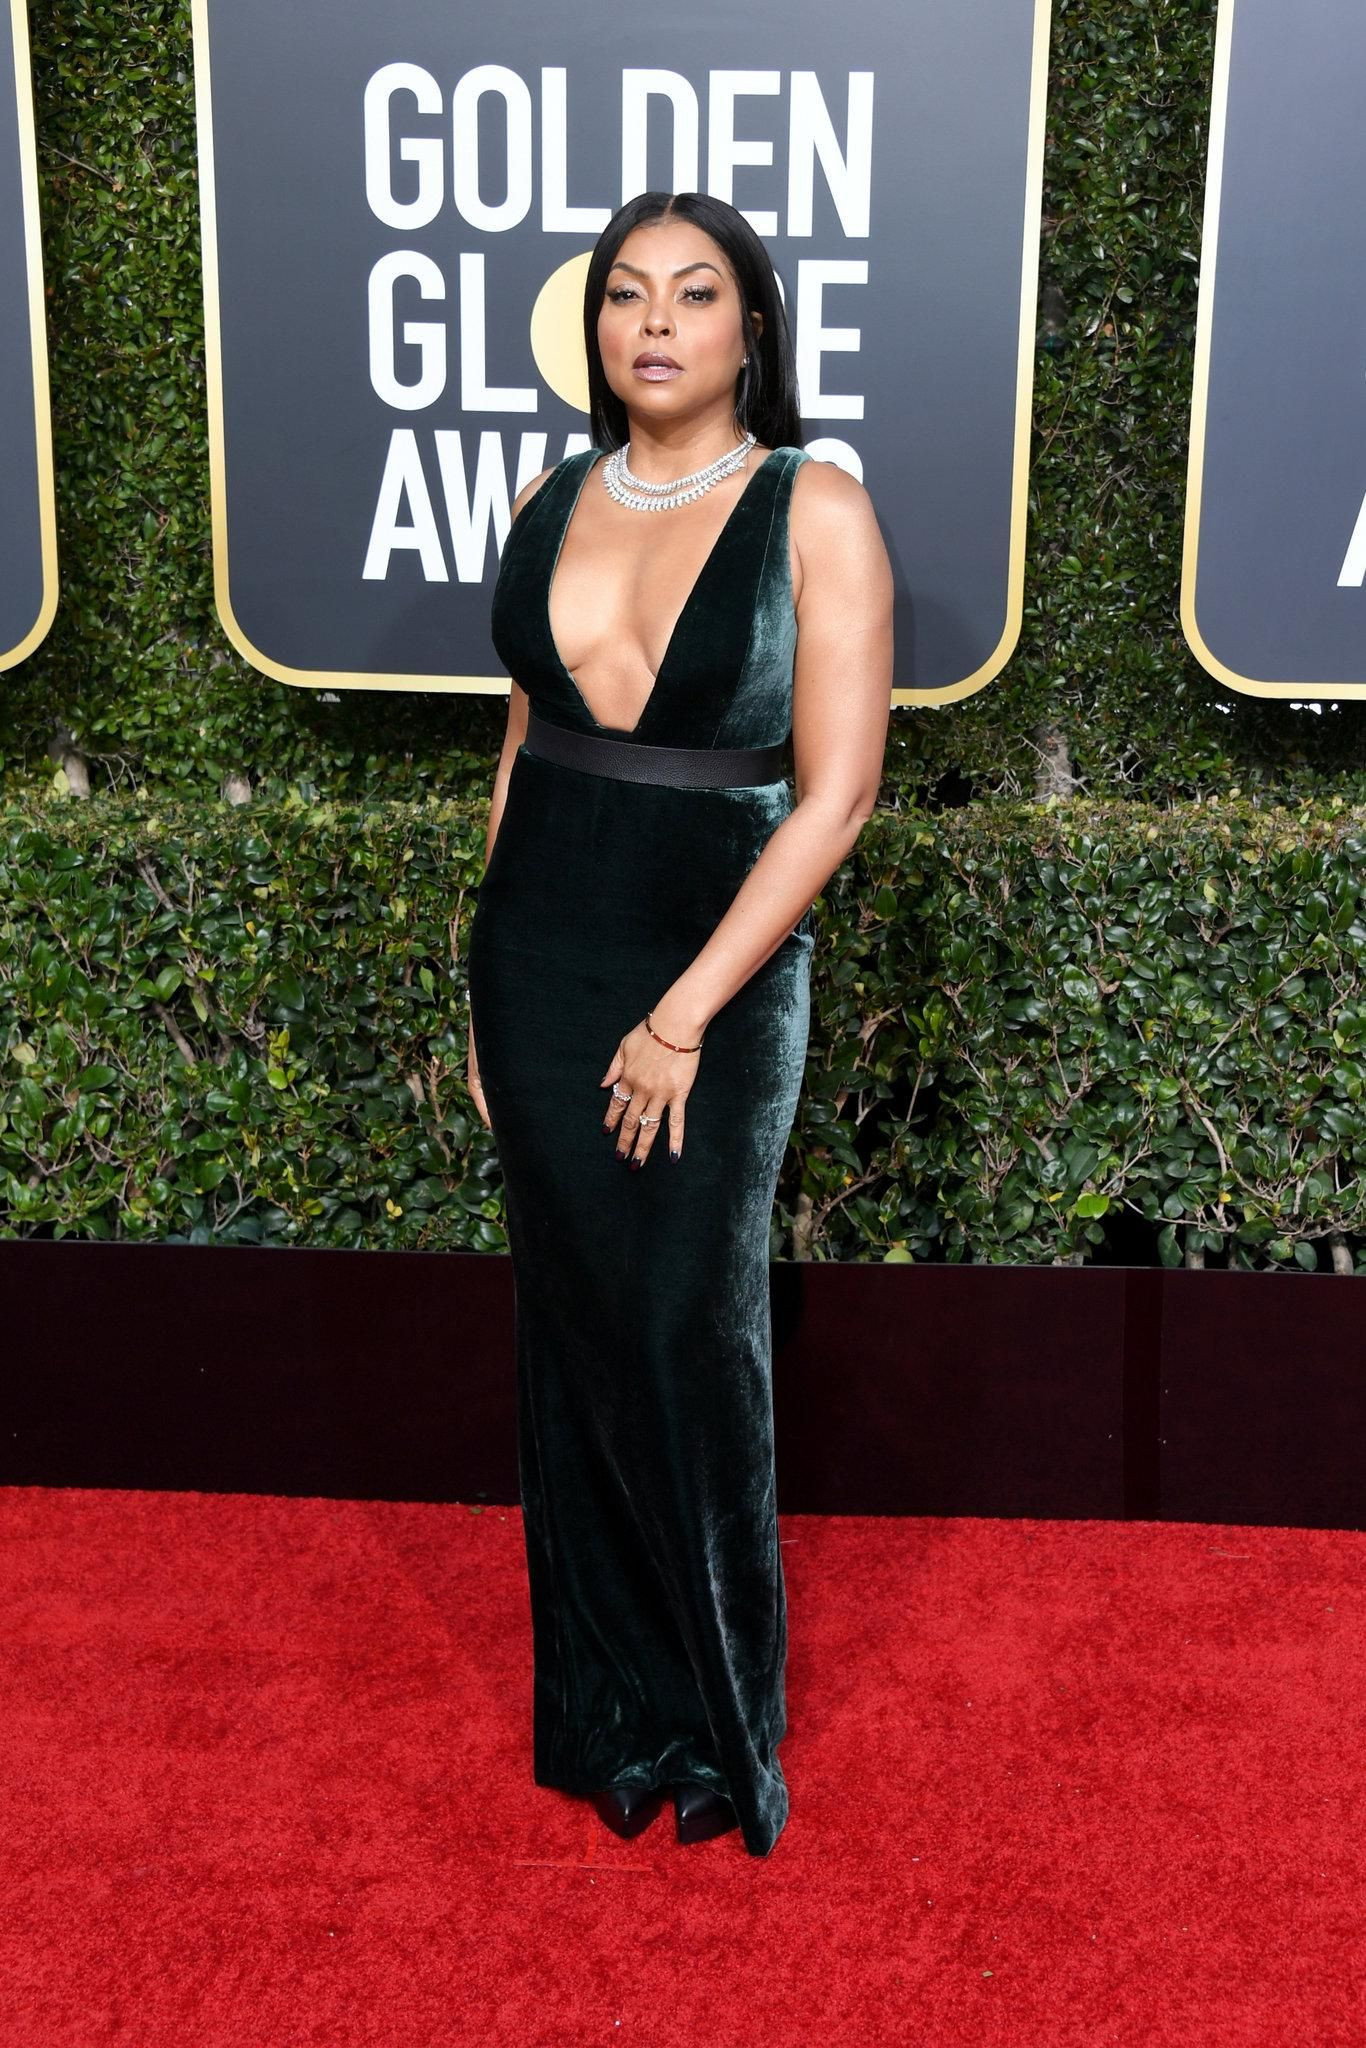 The Golden Globes Red Carpet Fashion The New York Times